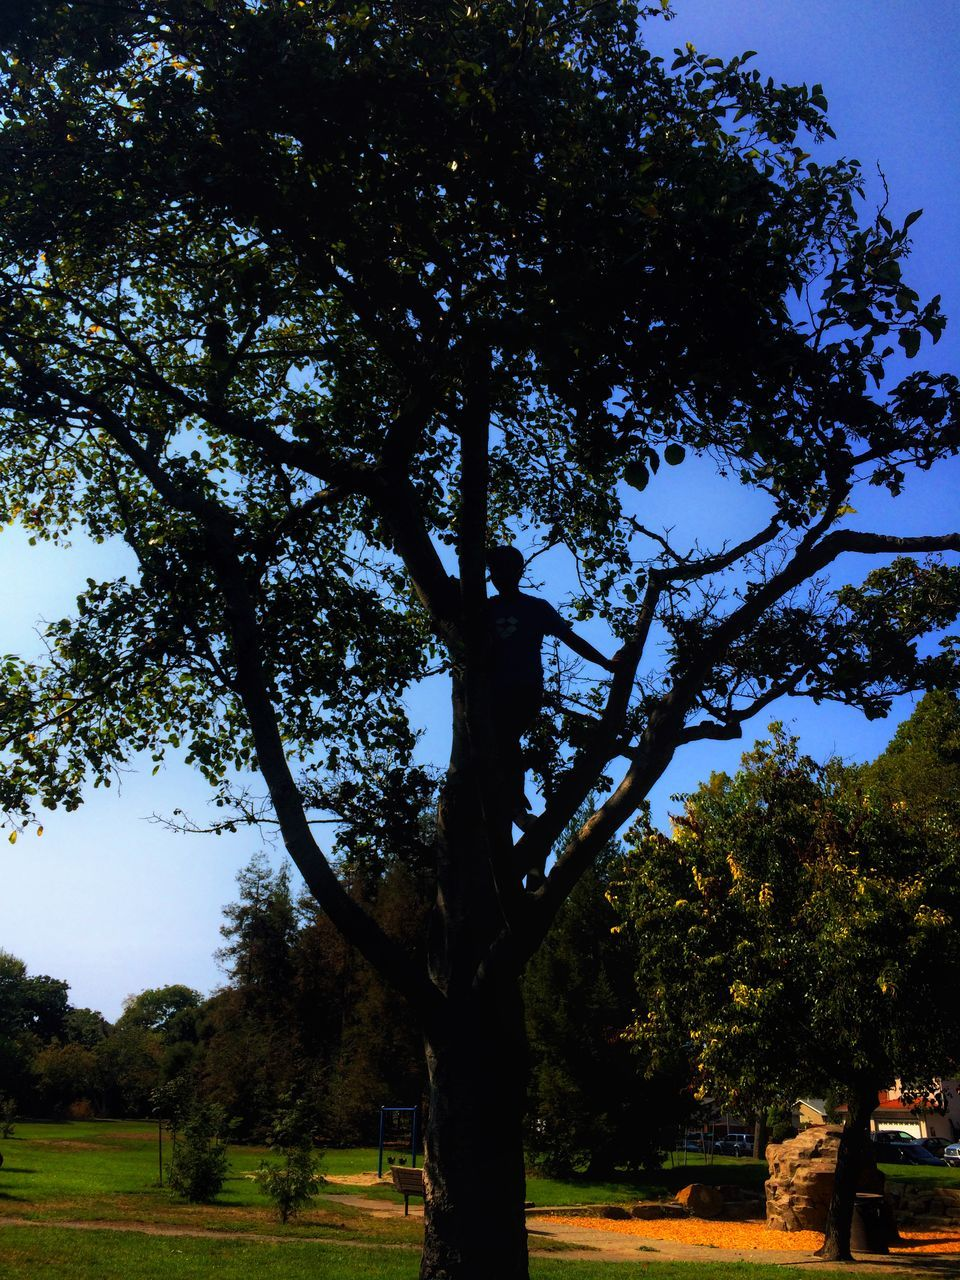 tree, growth, nature, day, tranquility, no people, outdoors, scenics, beauty in nature, branch, sky